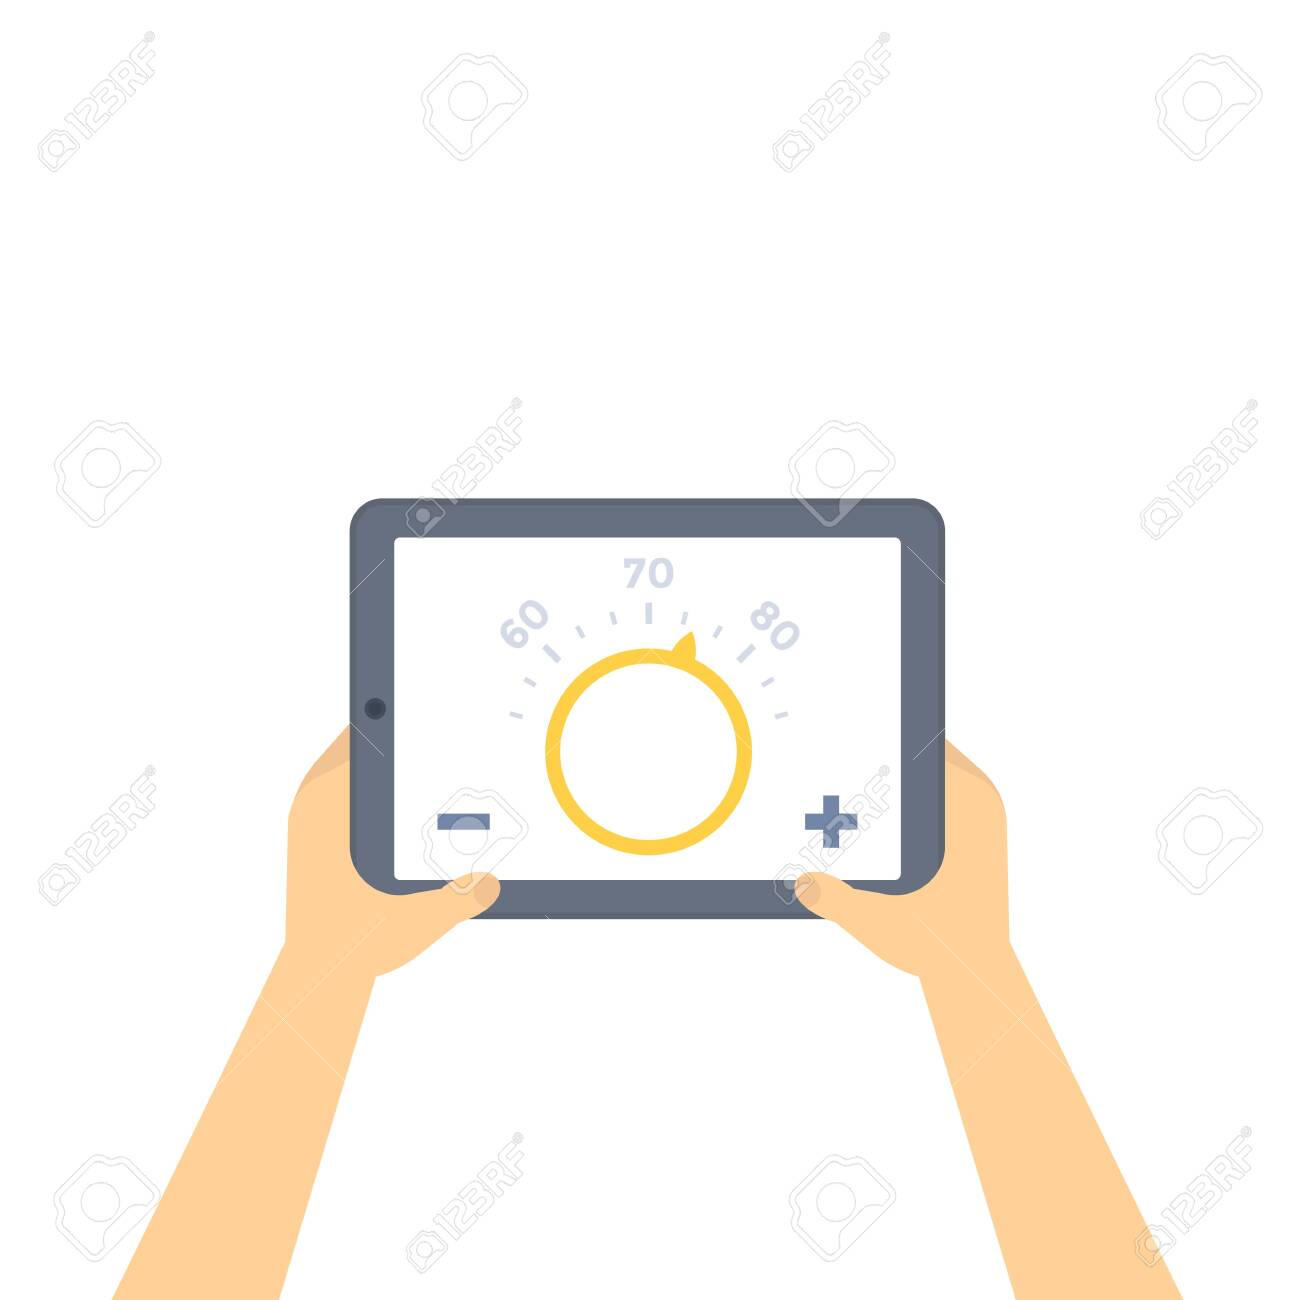 thermostat app on tablet screen - 122980035